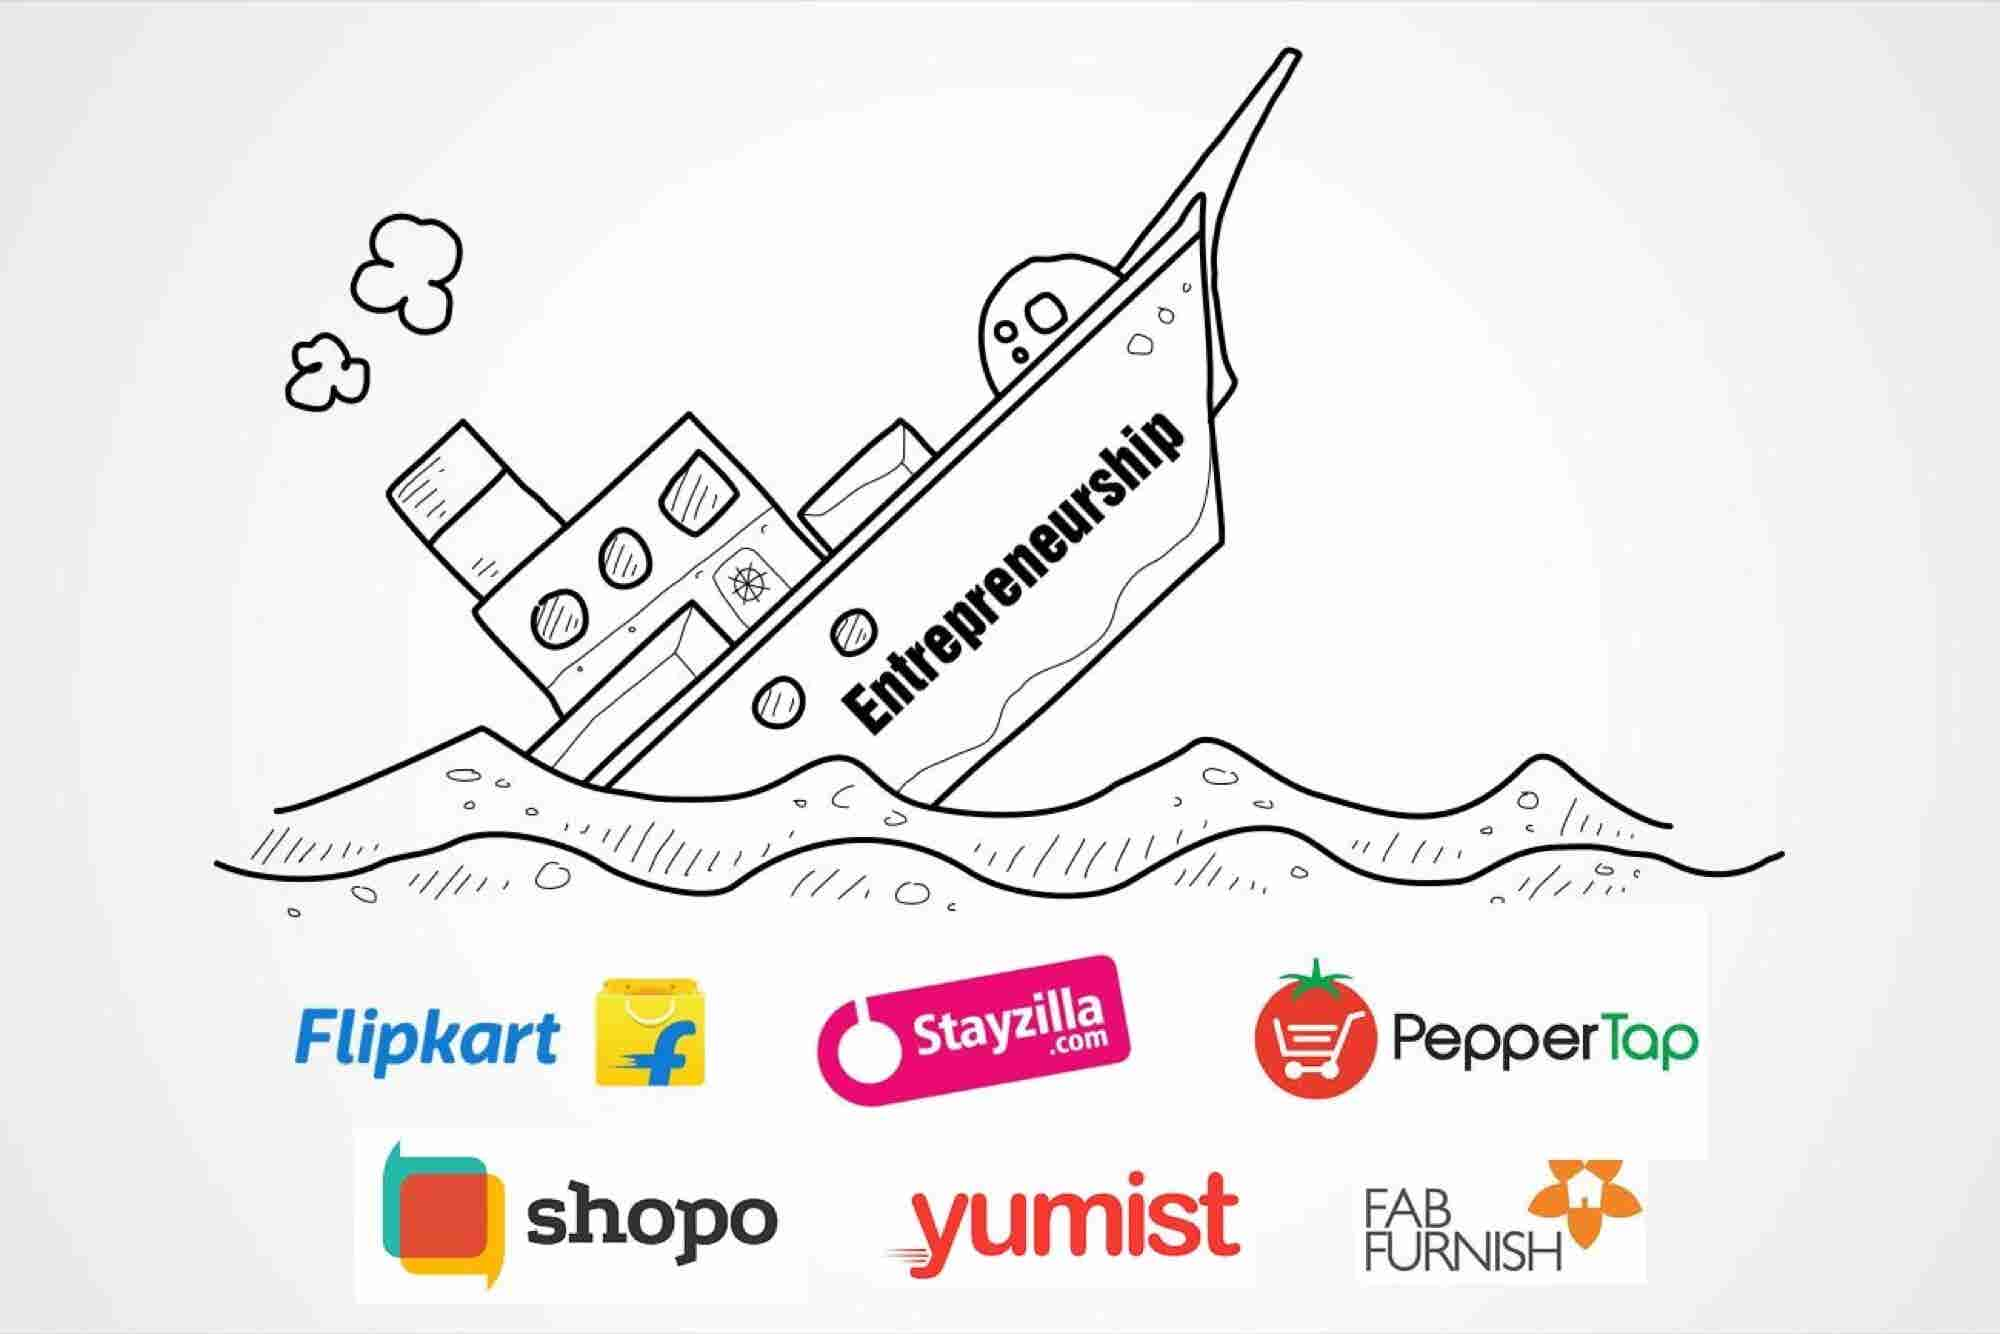 With SoftBank Confirming Flipkart's Buyout, is this the End of an Era For Indian ecommerce?